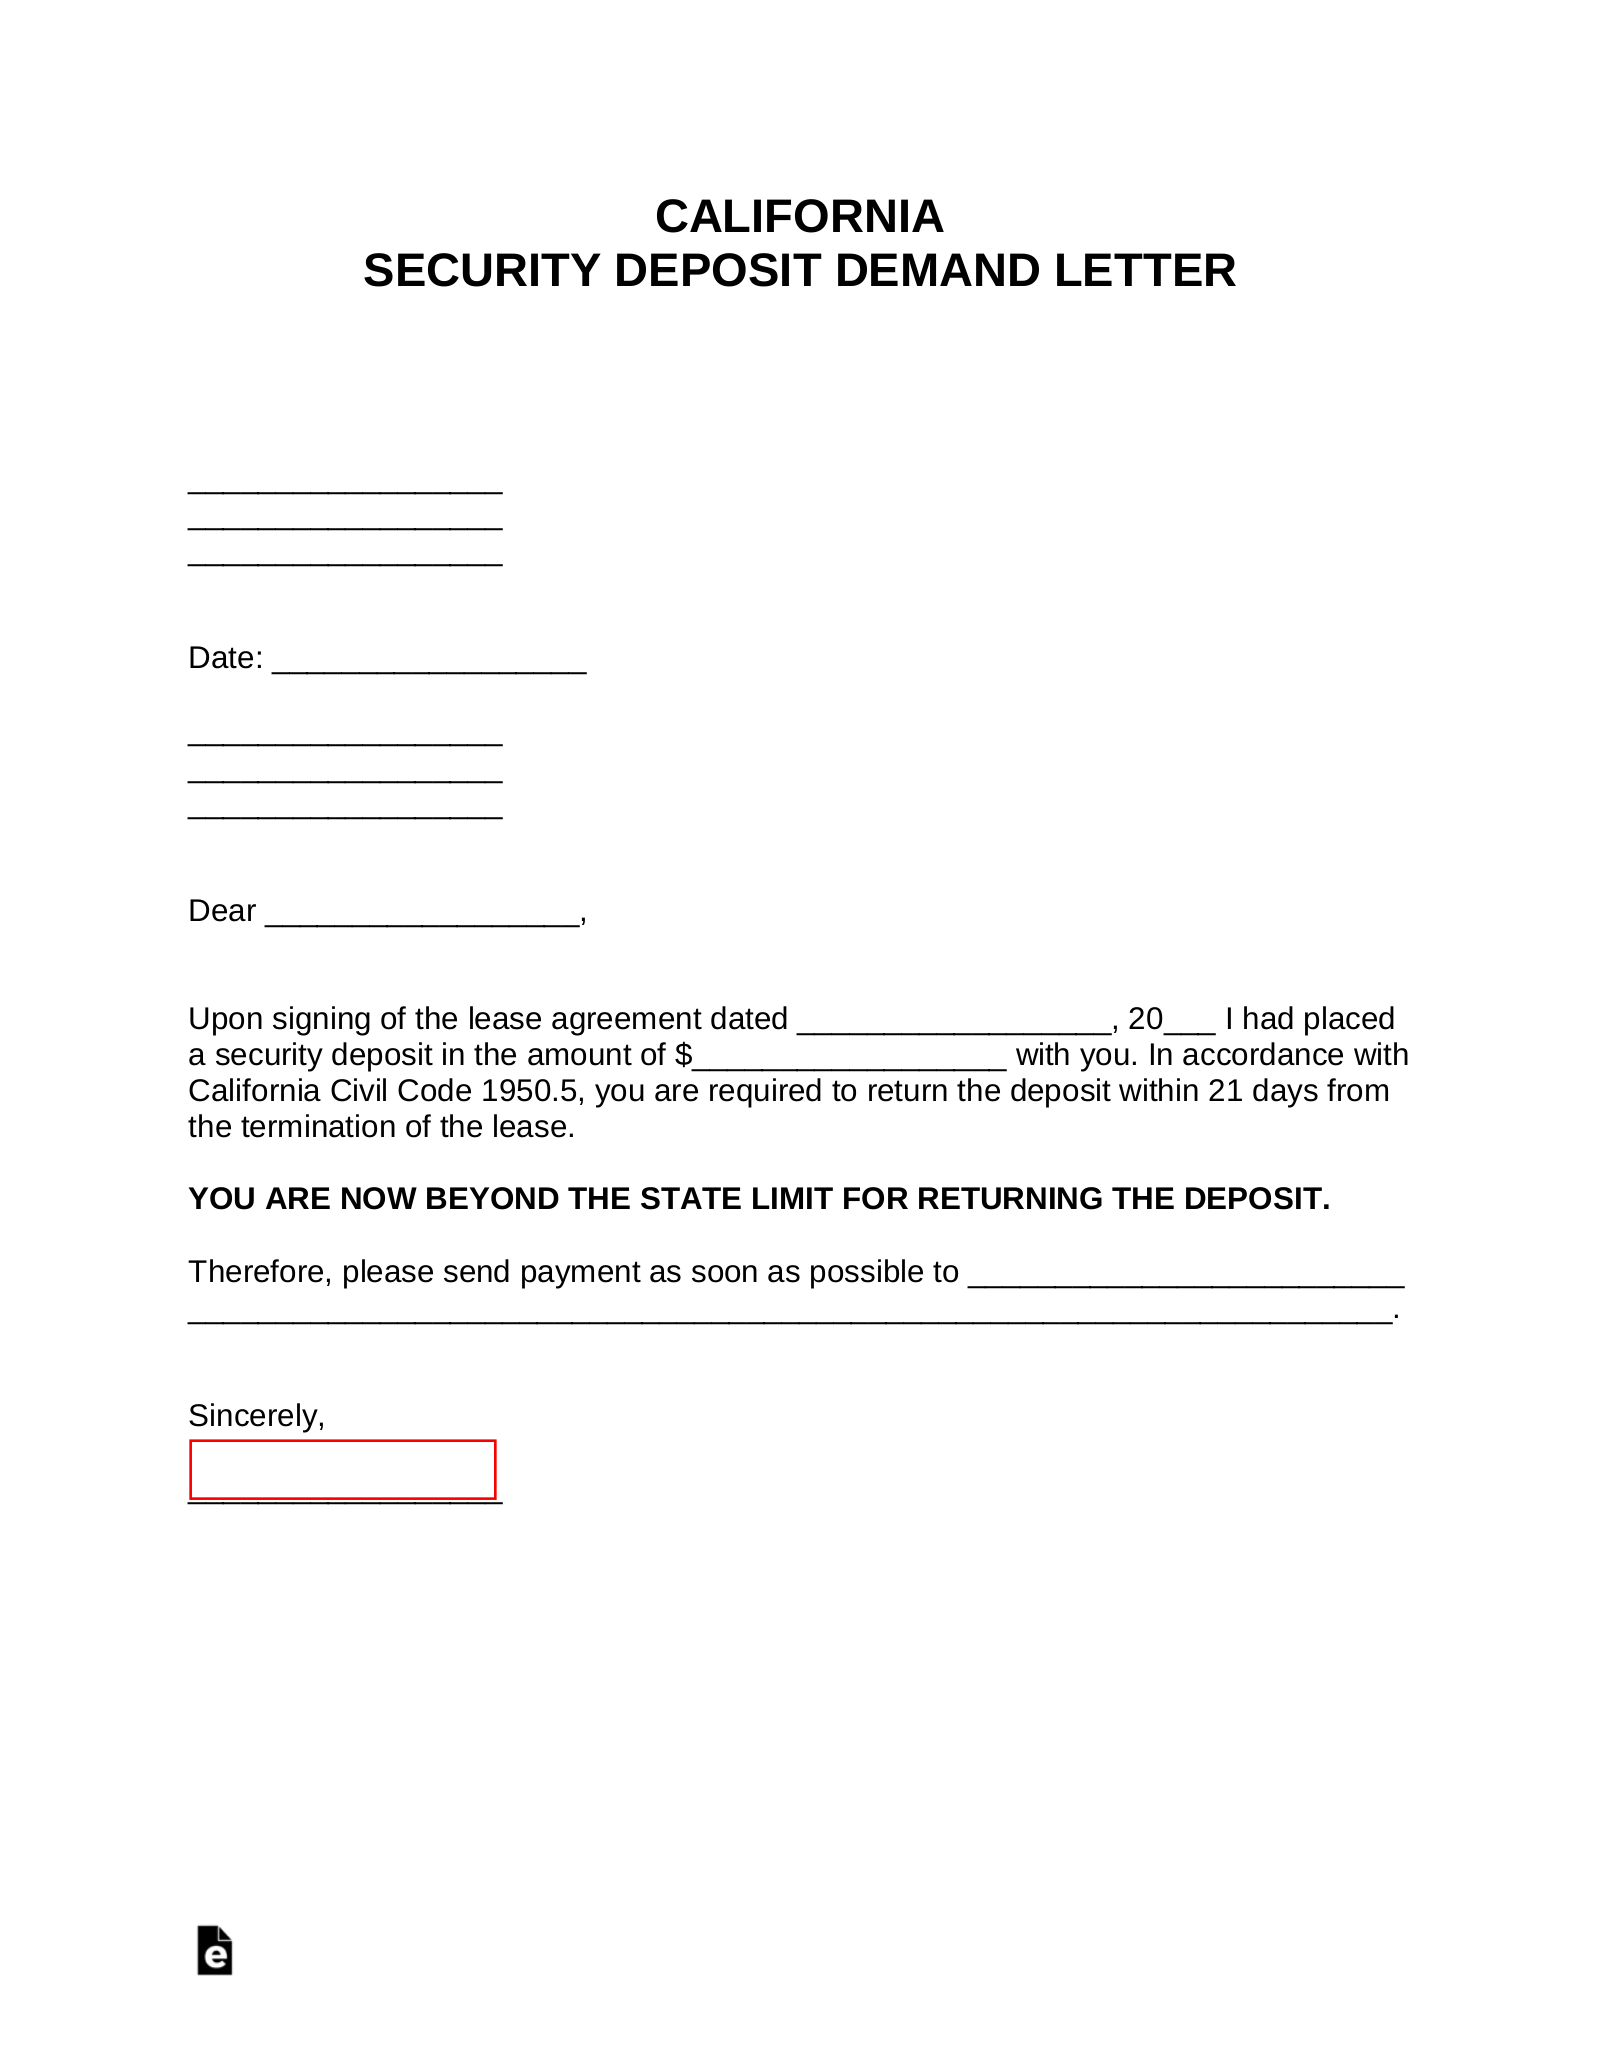 Security Deposit Demand Letter California from eforms.com